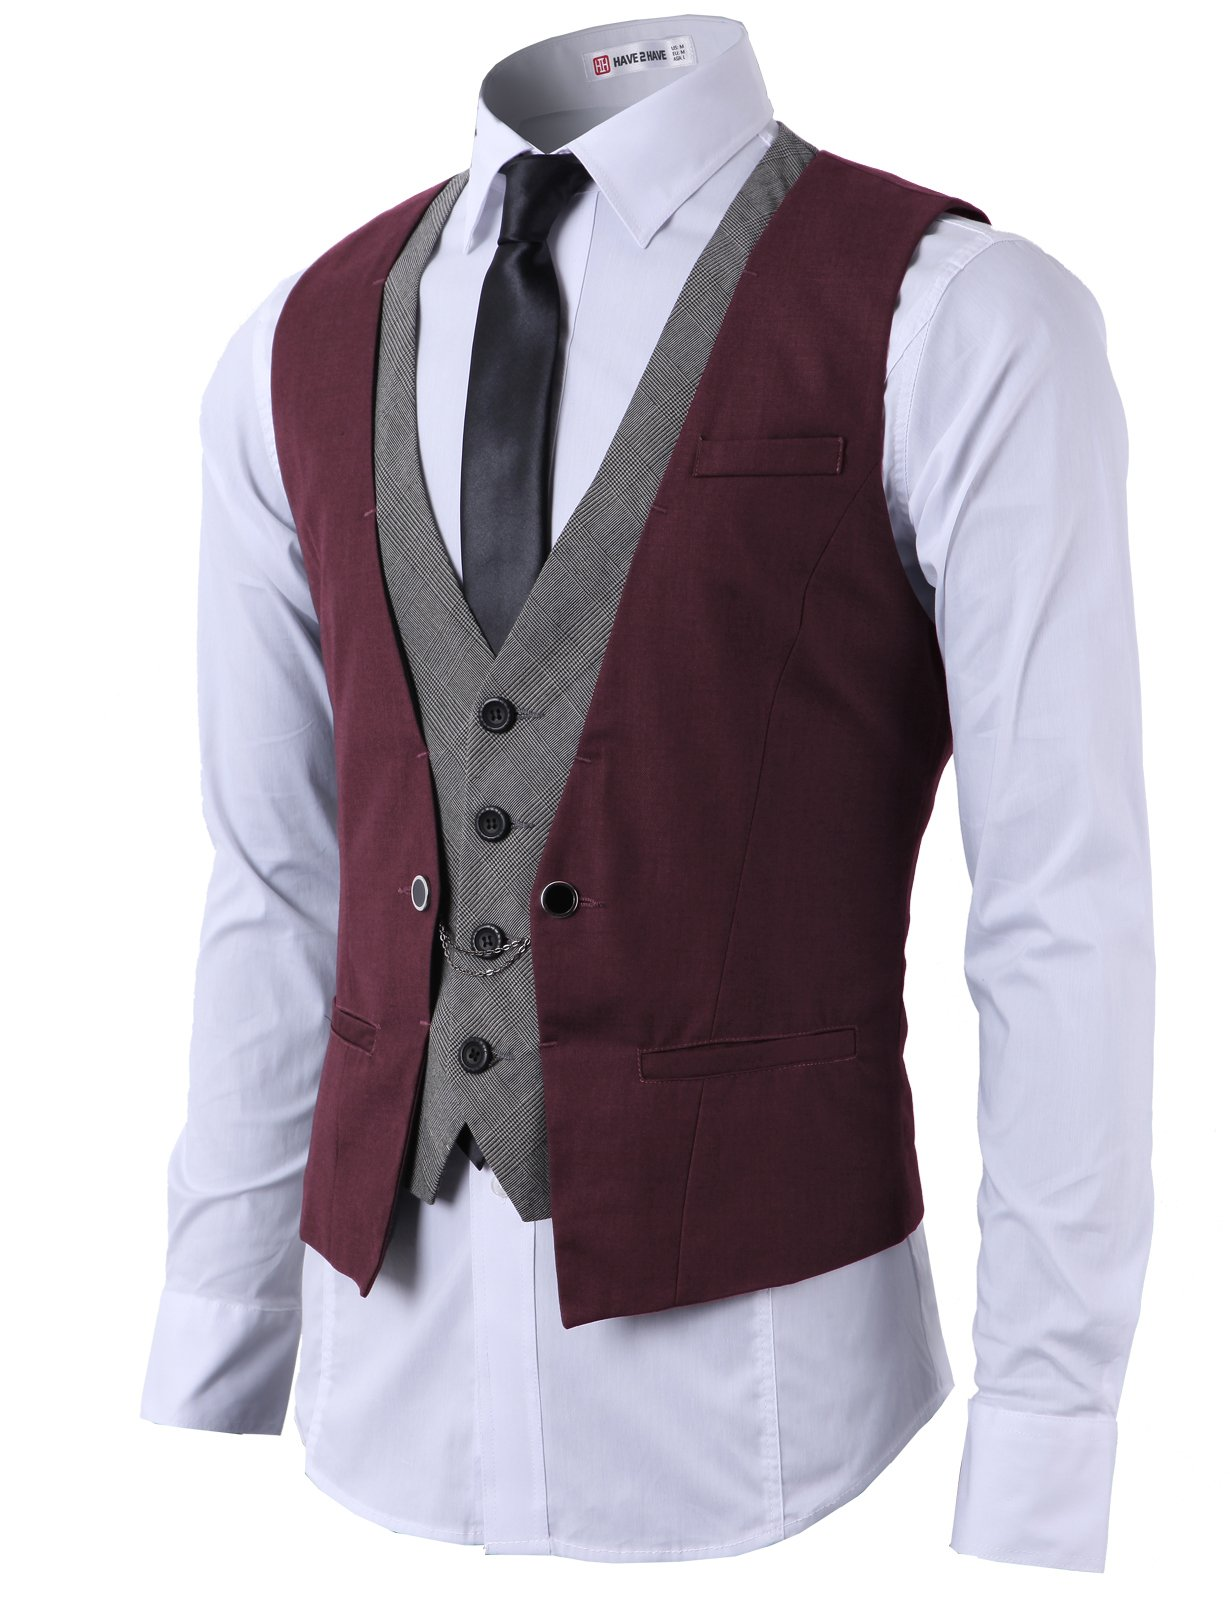 H2H Mens Modern Fashion Business Suit Layered Vest With Chain Rings WINE US 2XL/Asia 3XL (CMOV01)